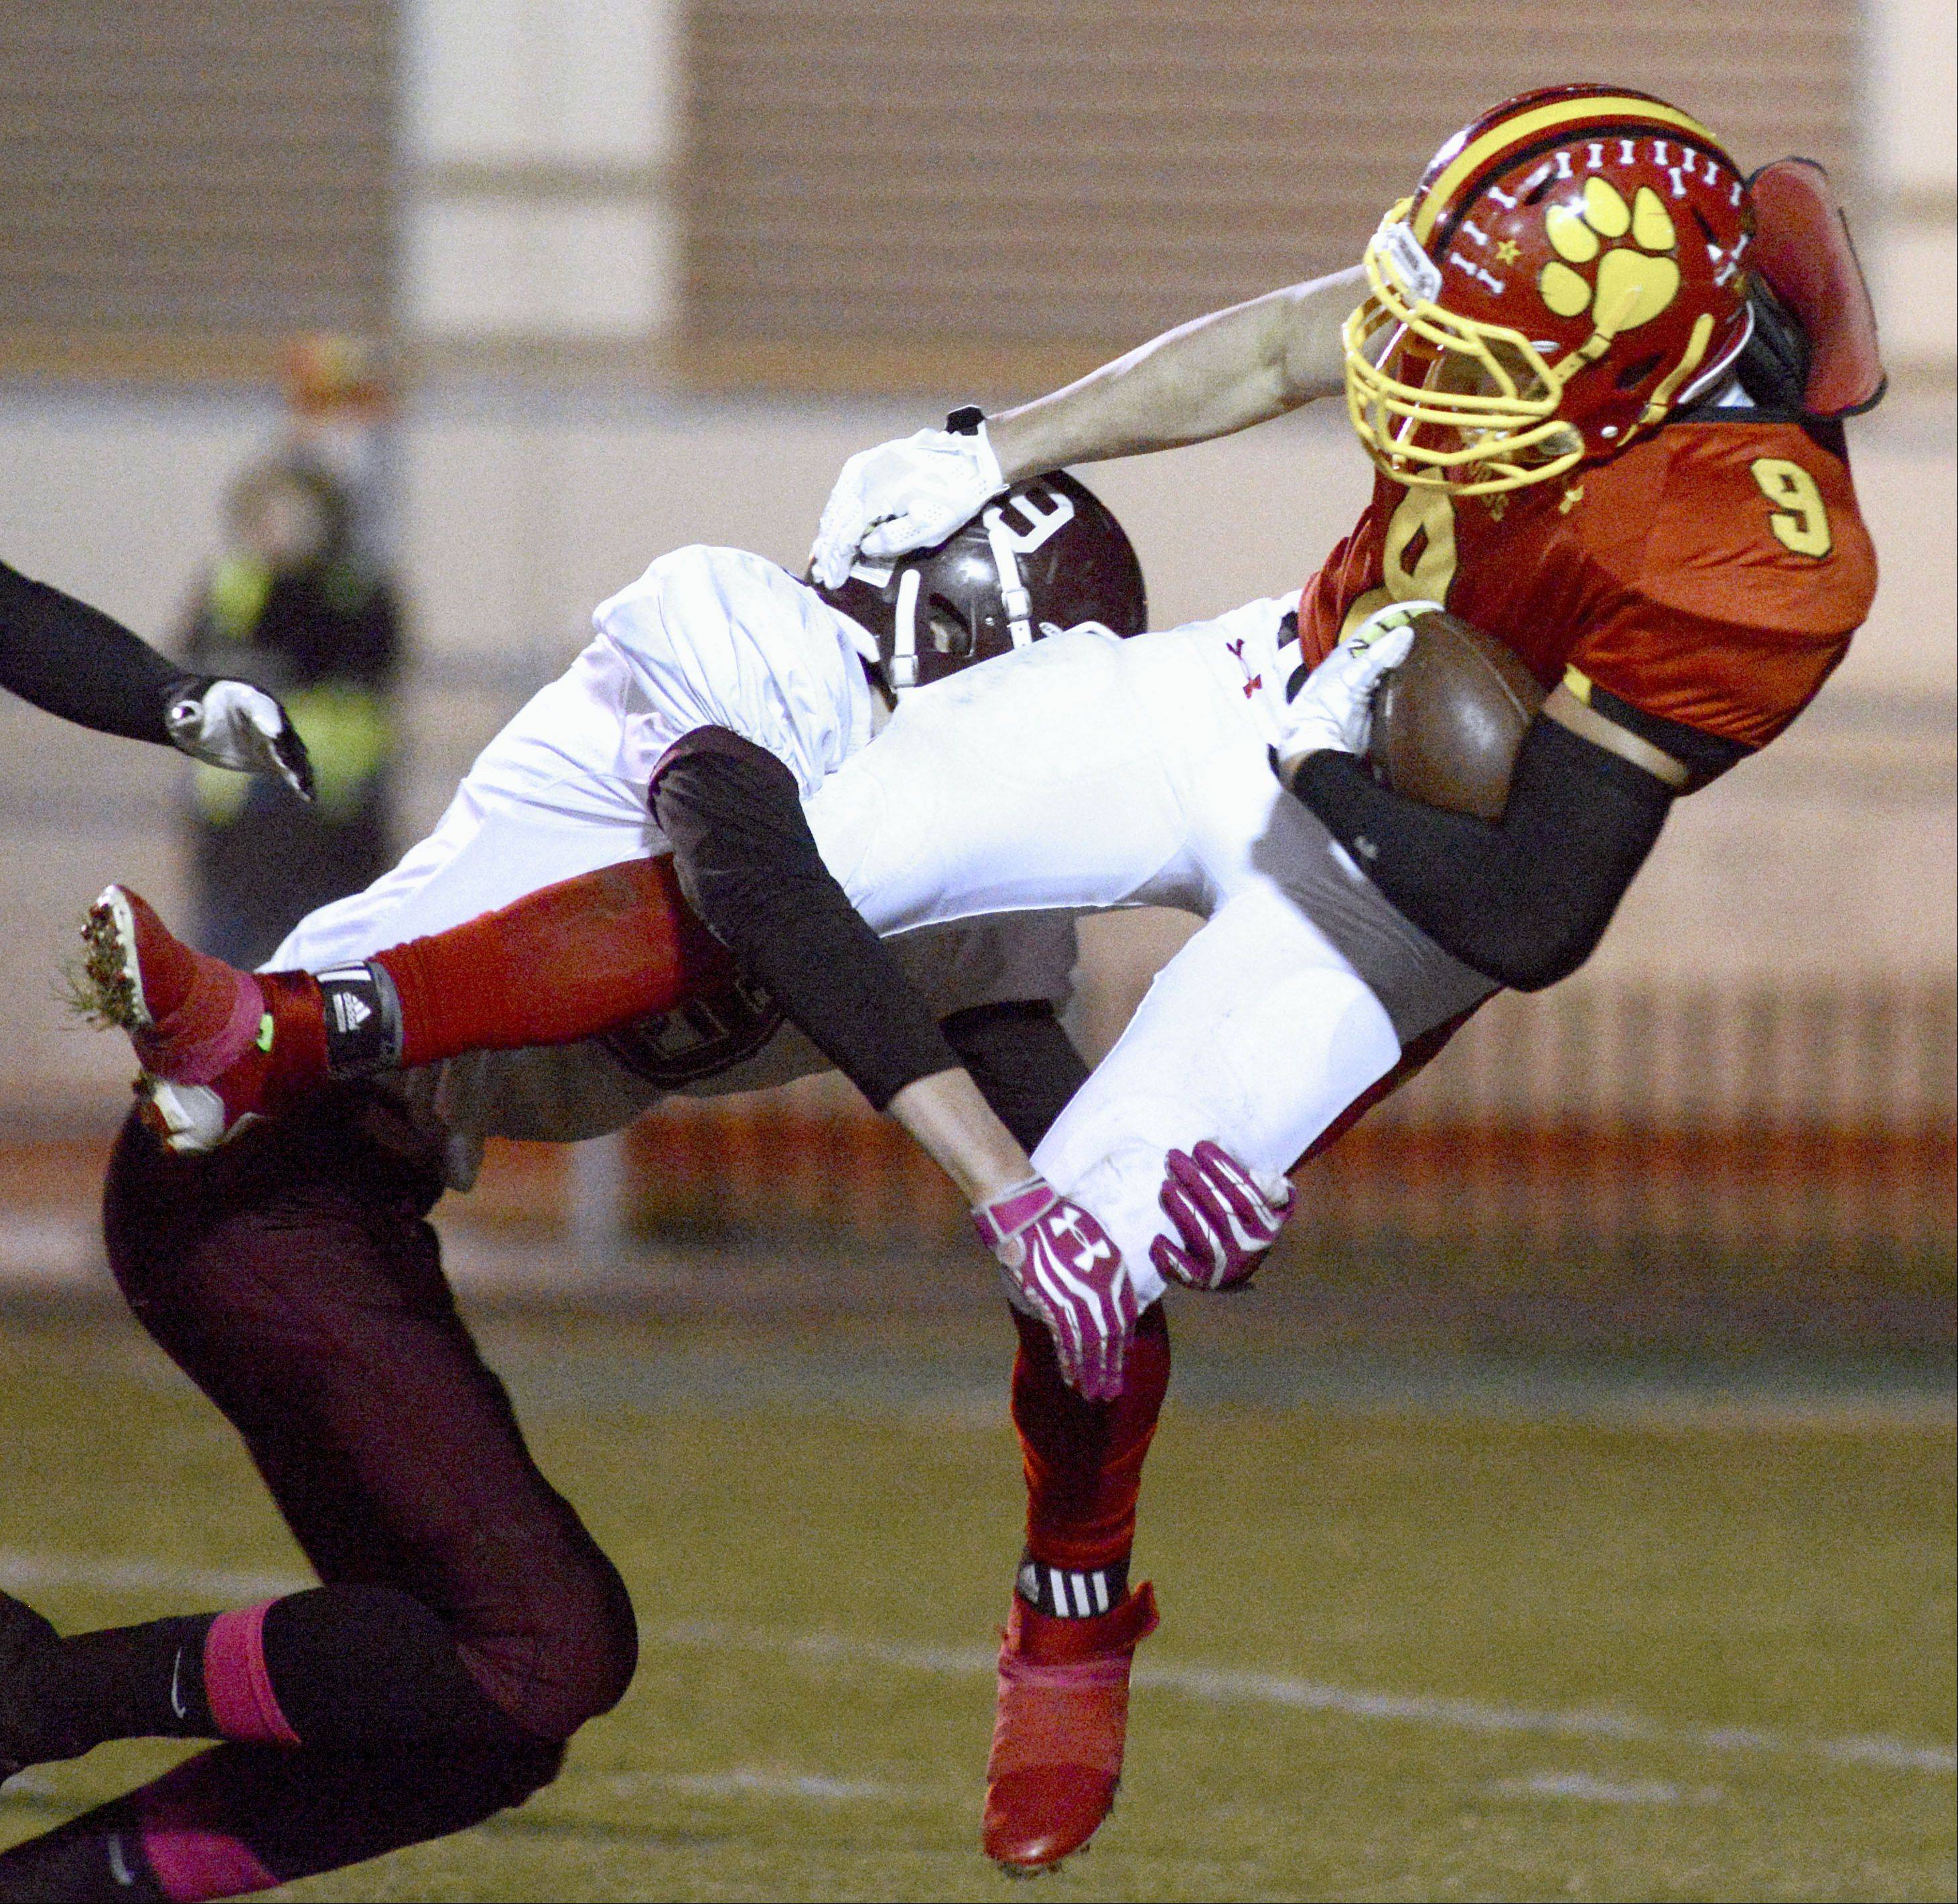 Batavia's Anthony Moneghini is taken down by Elgin's Michael Behining in the second quarter on Friday, October 25.